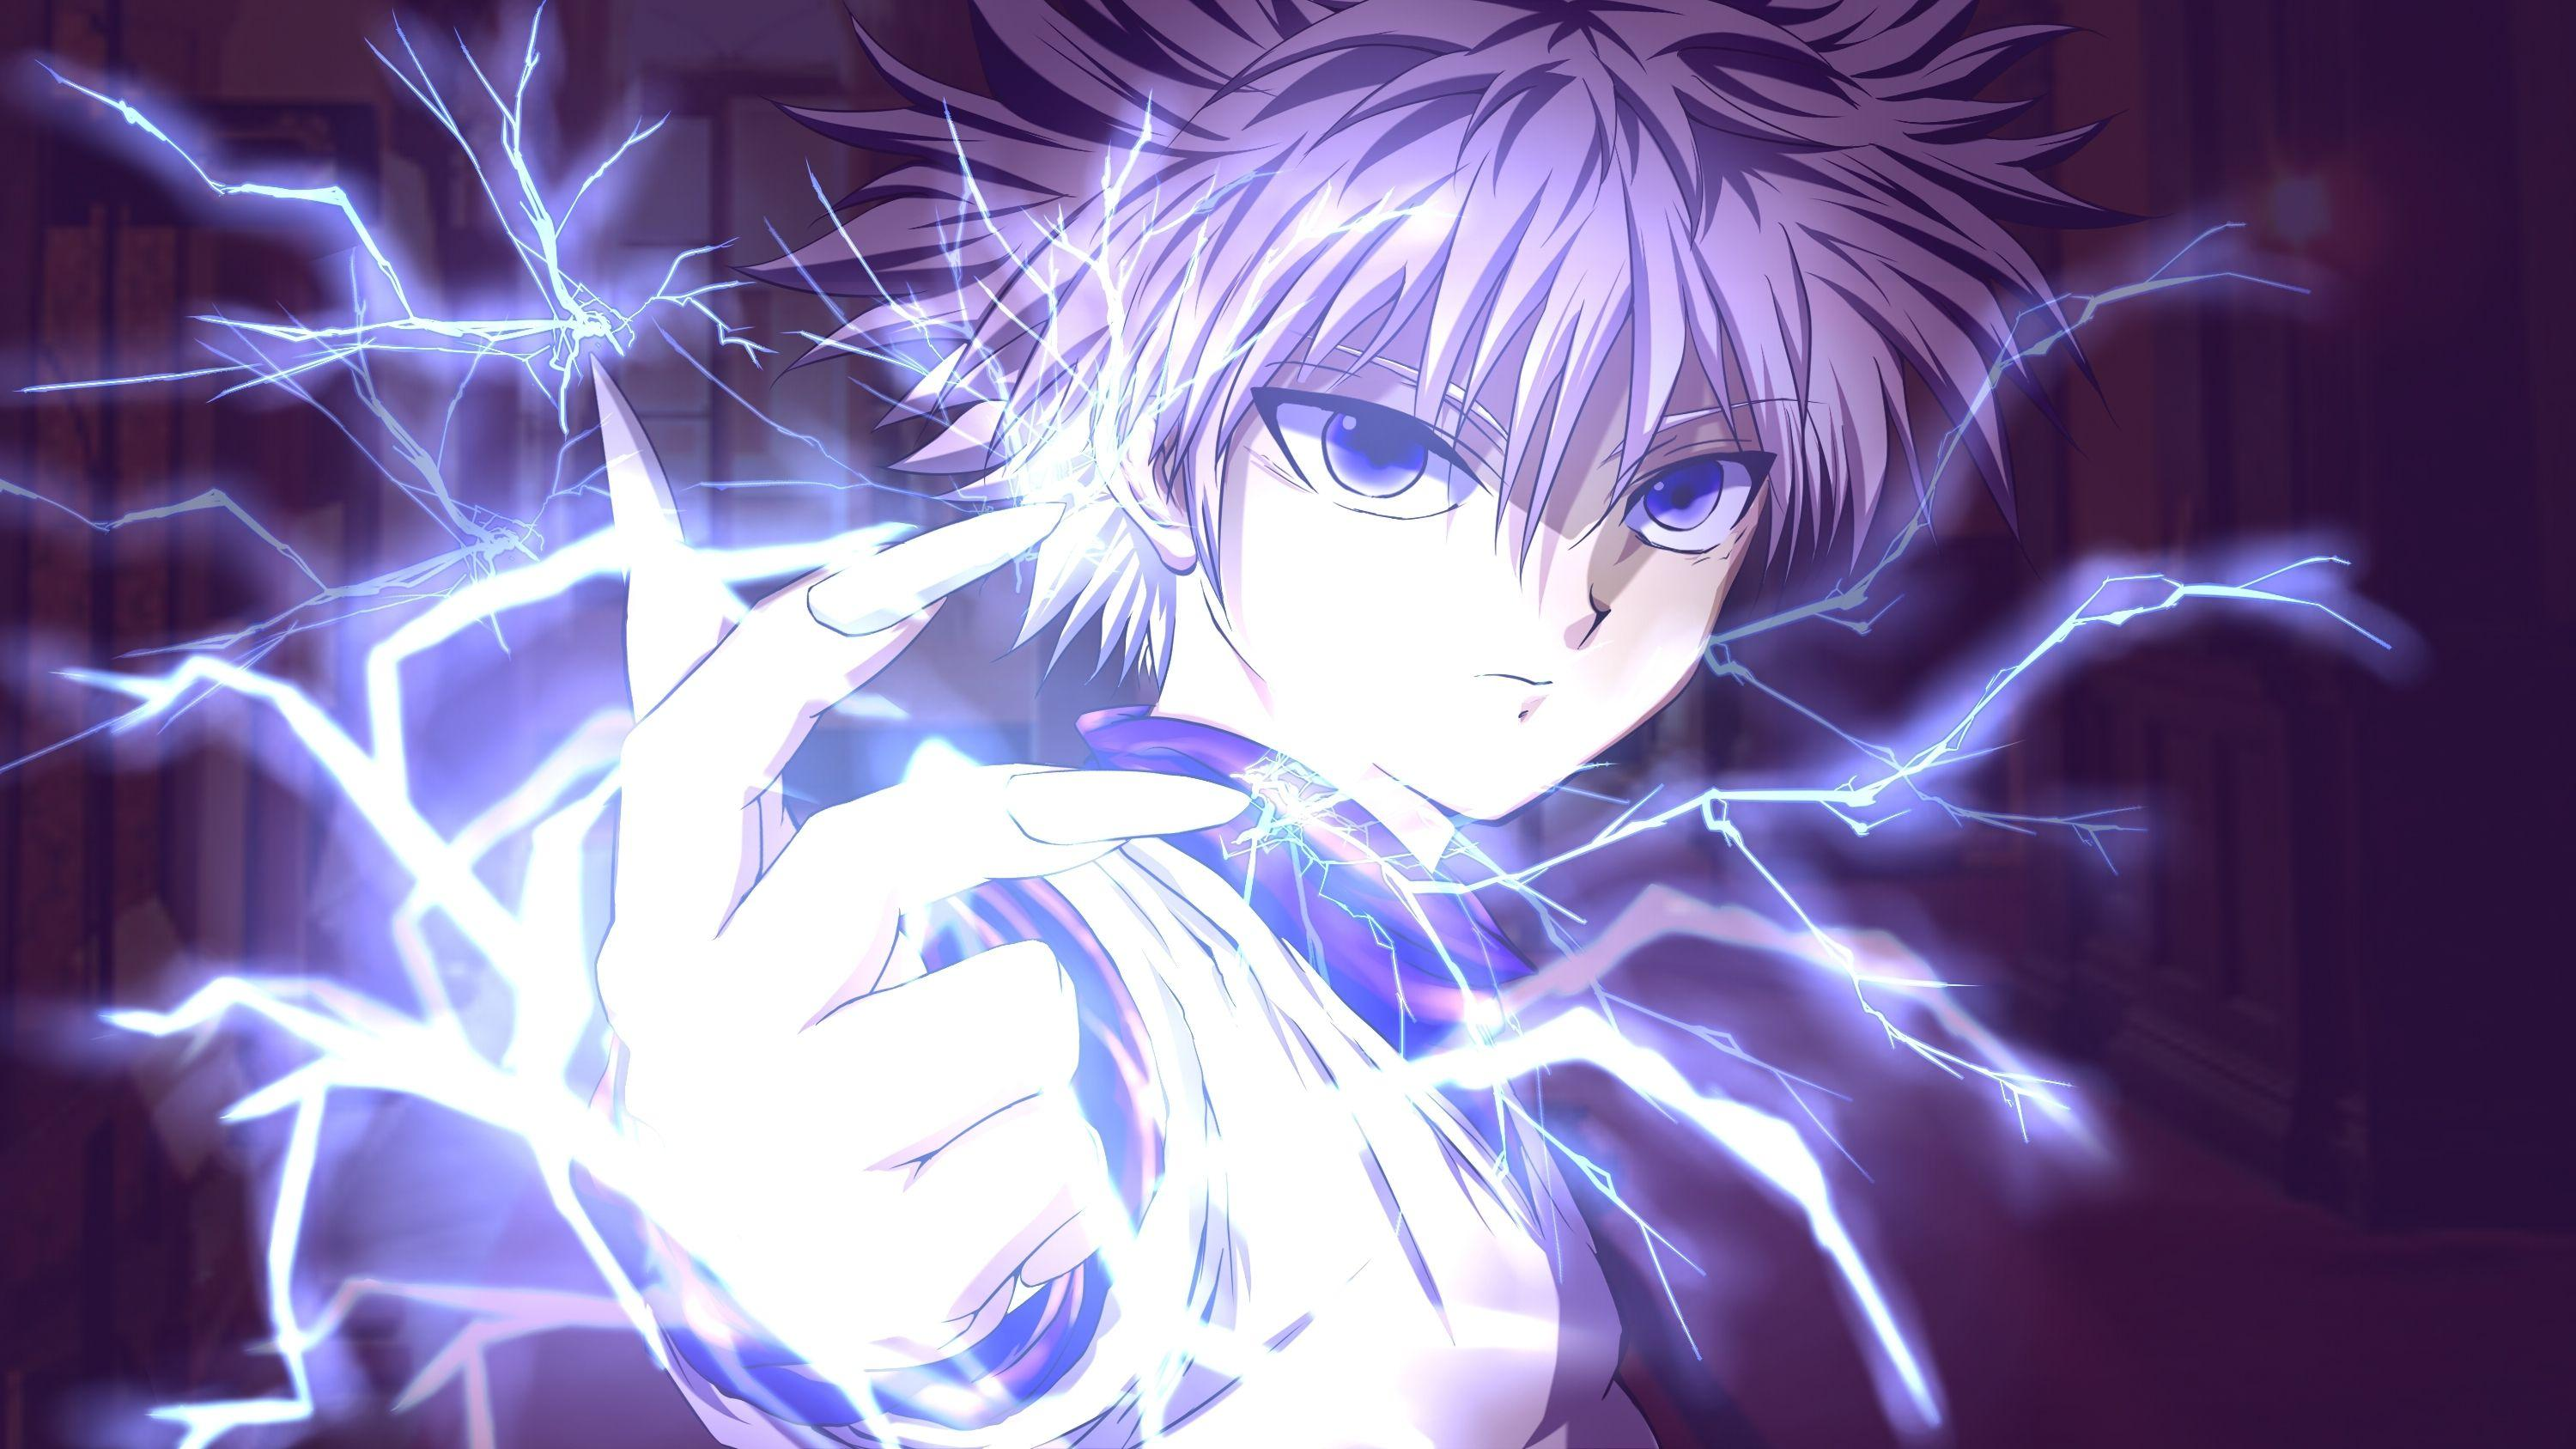 Wiki targeted (entertainment) · appearance · images · 2011 · hunter × hunter: Hunter × Hunter Wallpapers - Wallpaper Cave